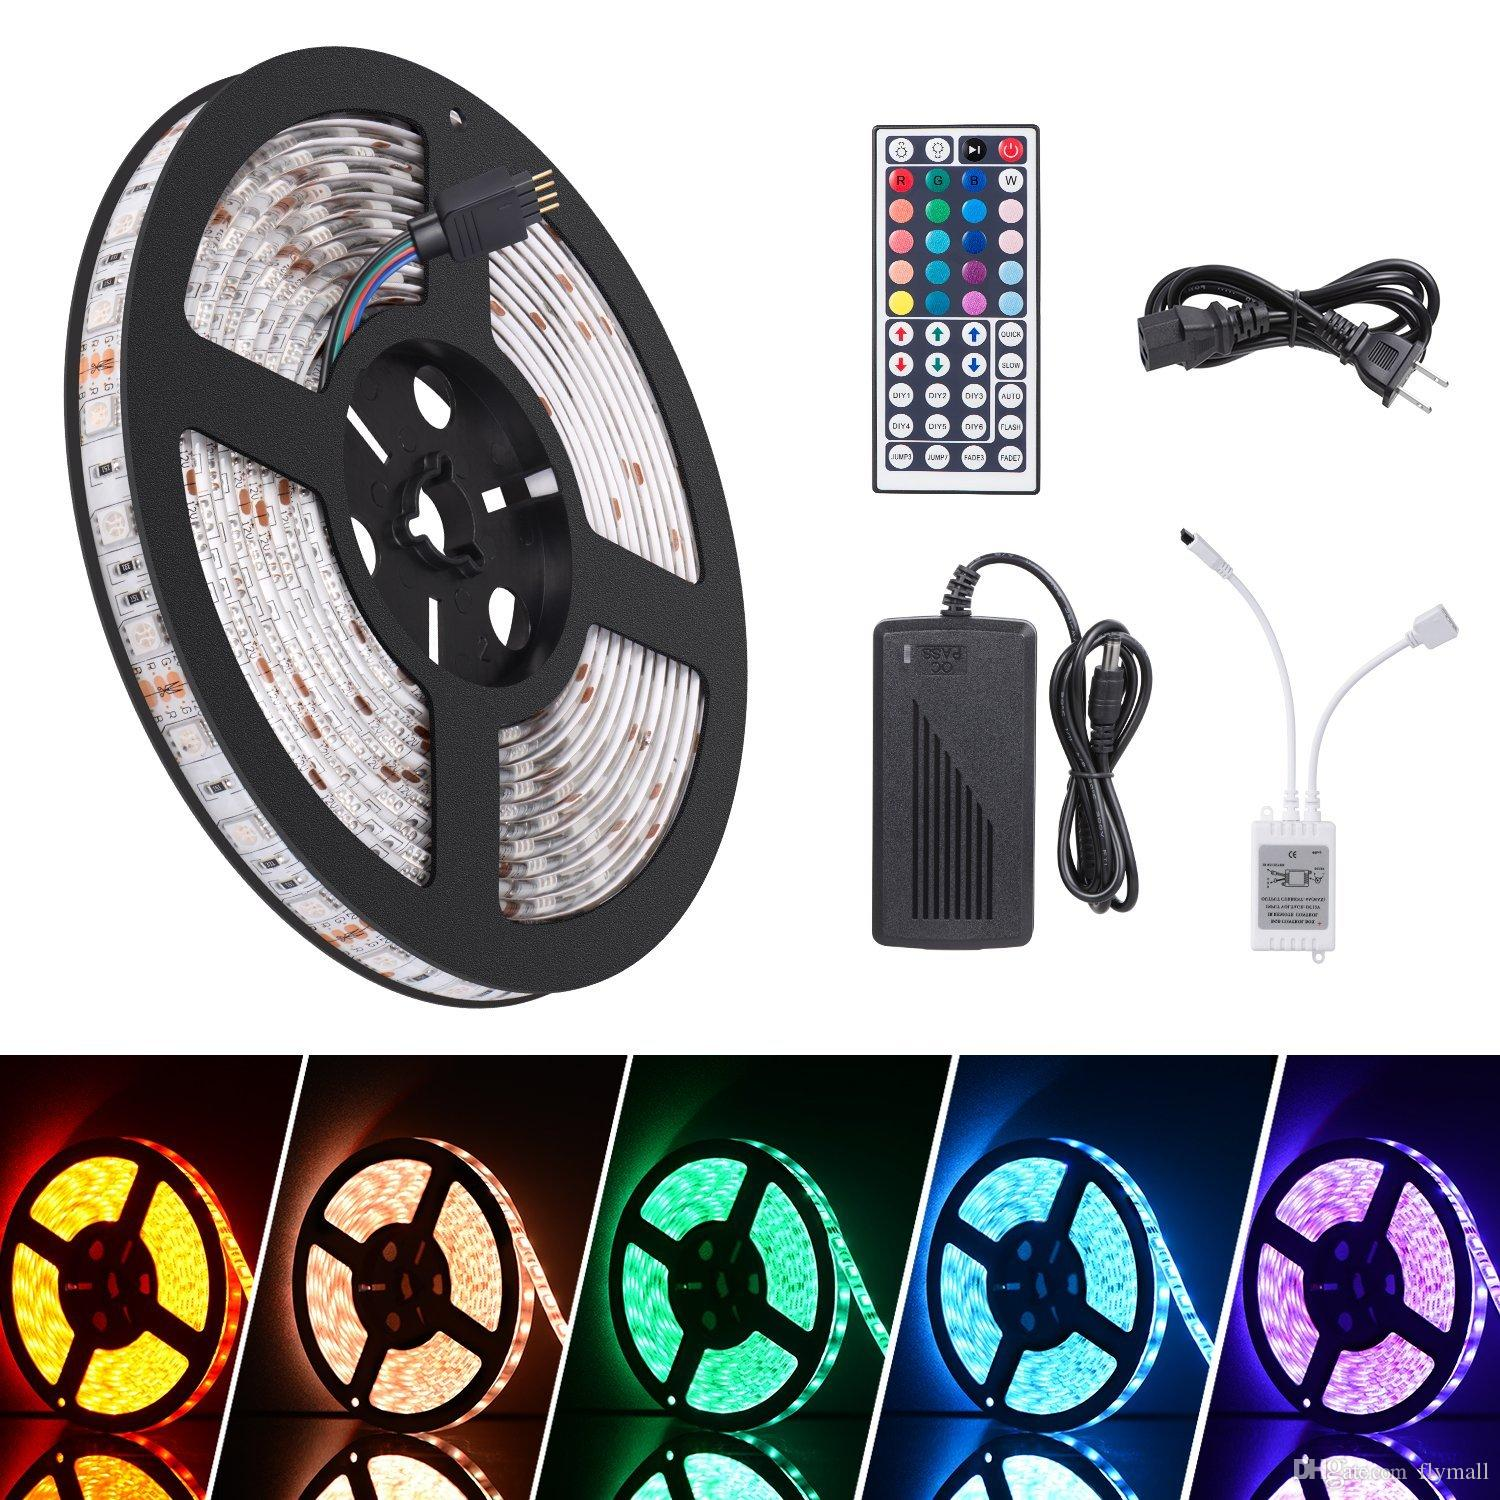 Wholeset 16.4ft RGB LED Flexible Strip Lights 300 Units SMD 5050 LEDs 12V DC Waterproof Light Strips DIY Christmas Home Car Bar Party Light